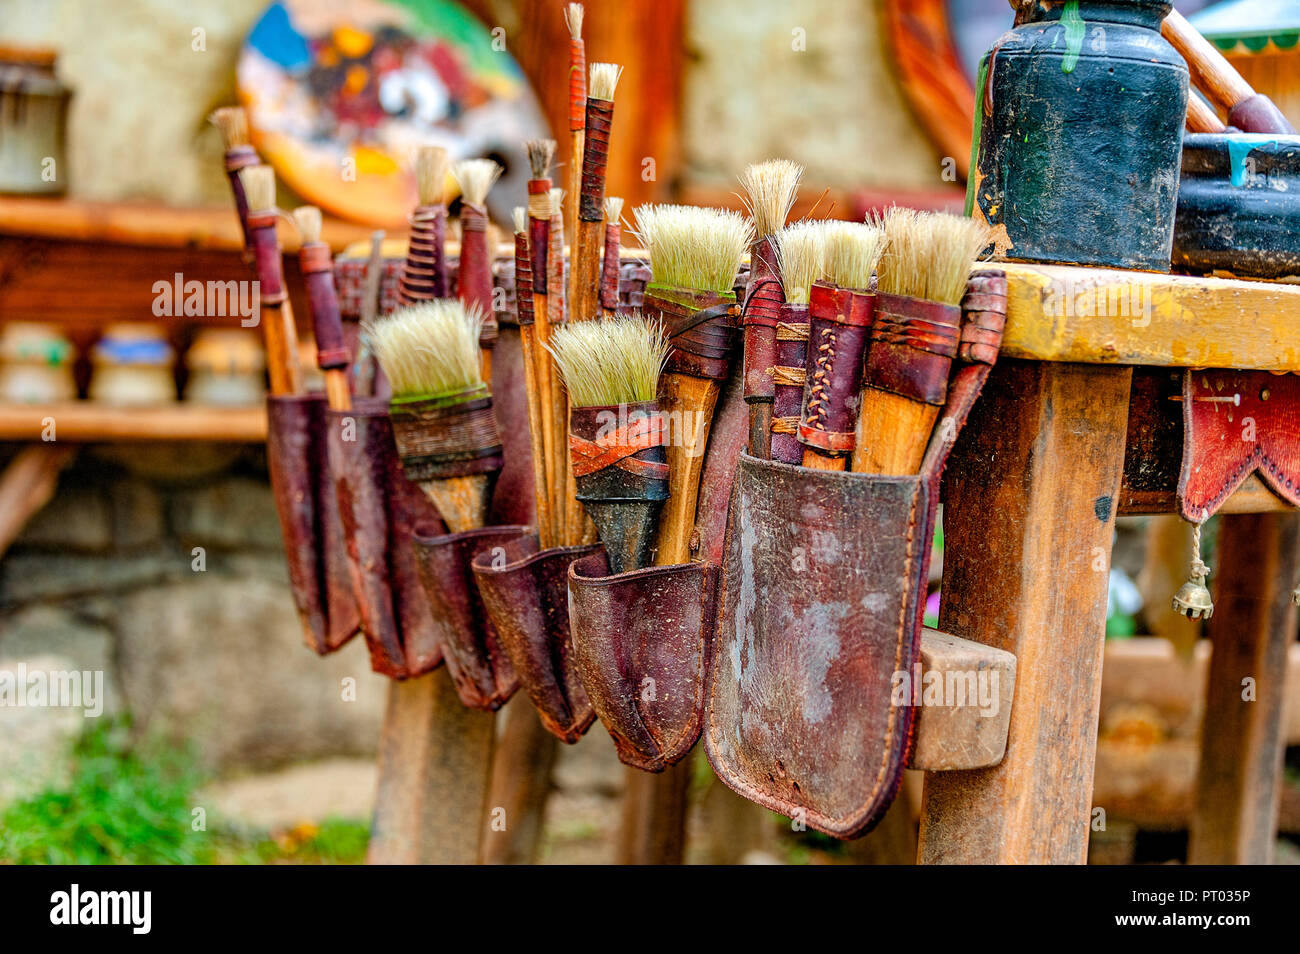 ARTIST's POUCH OF PAINT BRUSHES. Rustic painter's brushes of various shapes and sizes in an old leather pouch attached to one side of a table. - Stock Image